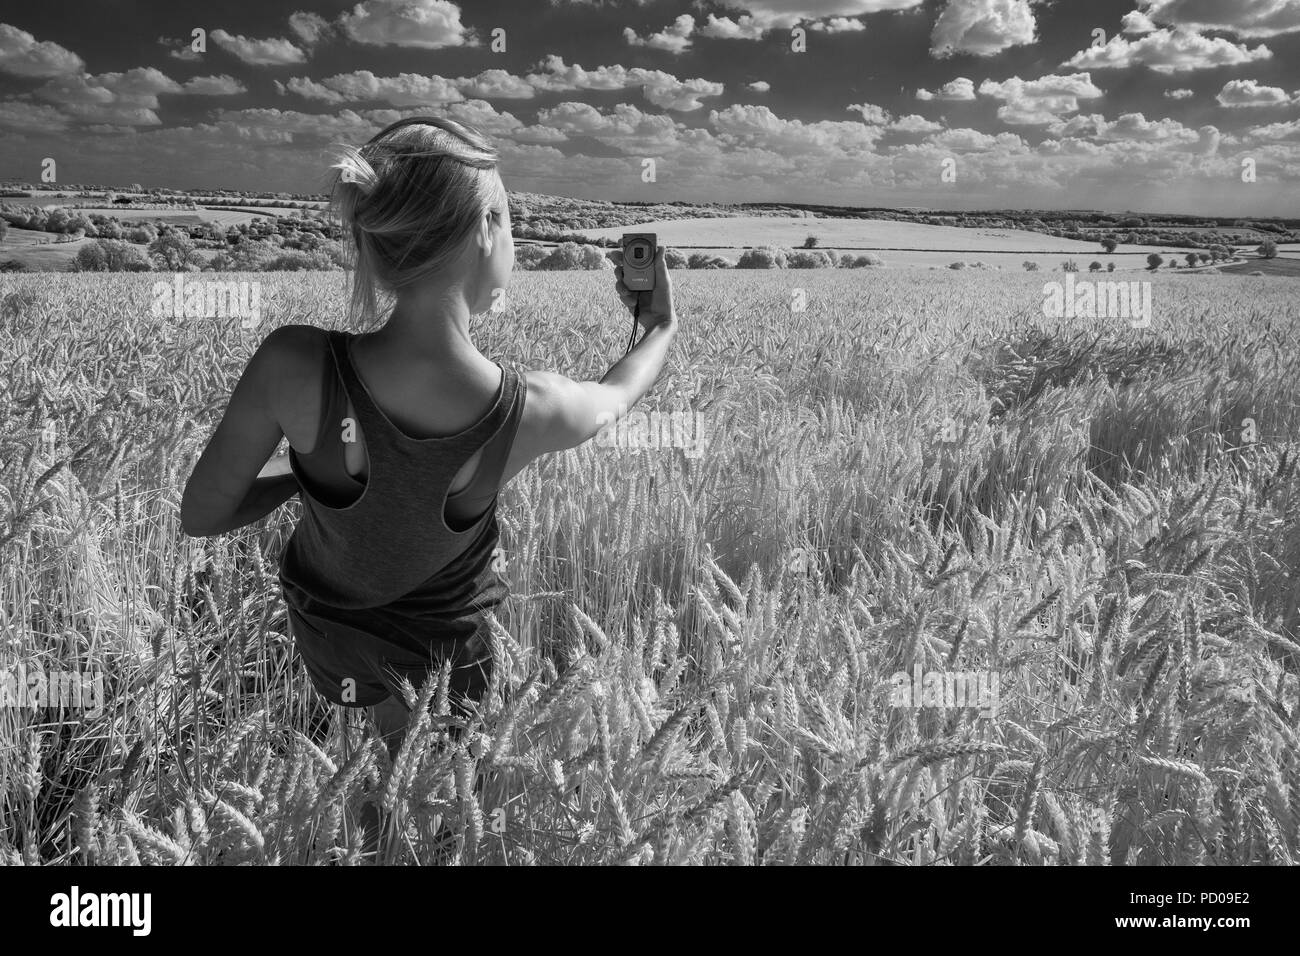 Young woman taking a photo of herself. - Stock Image